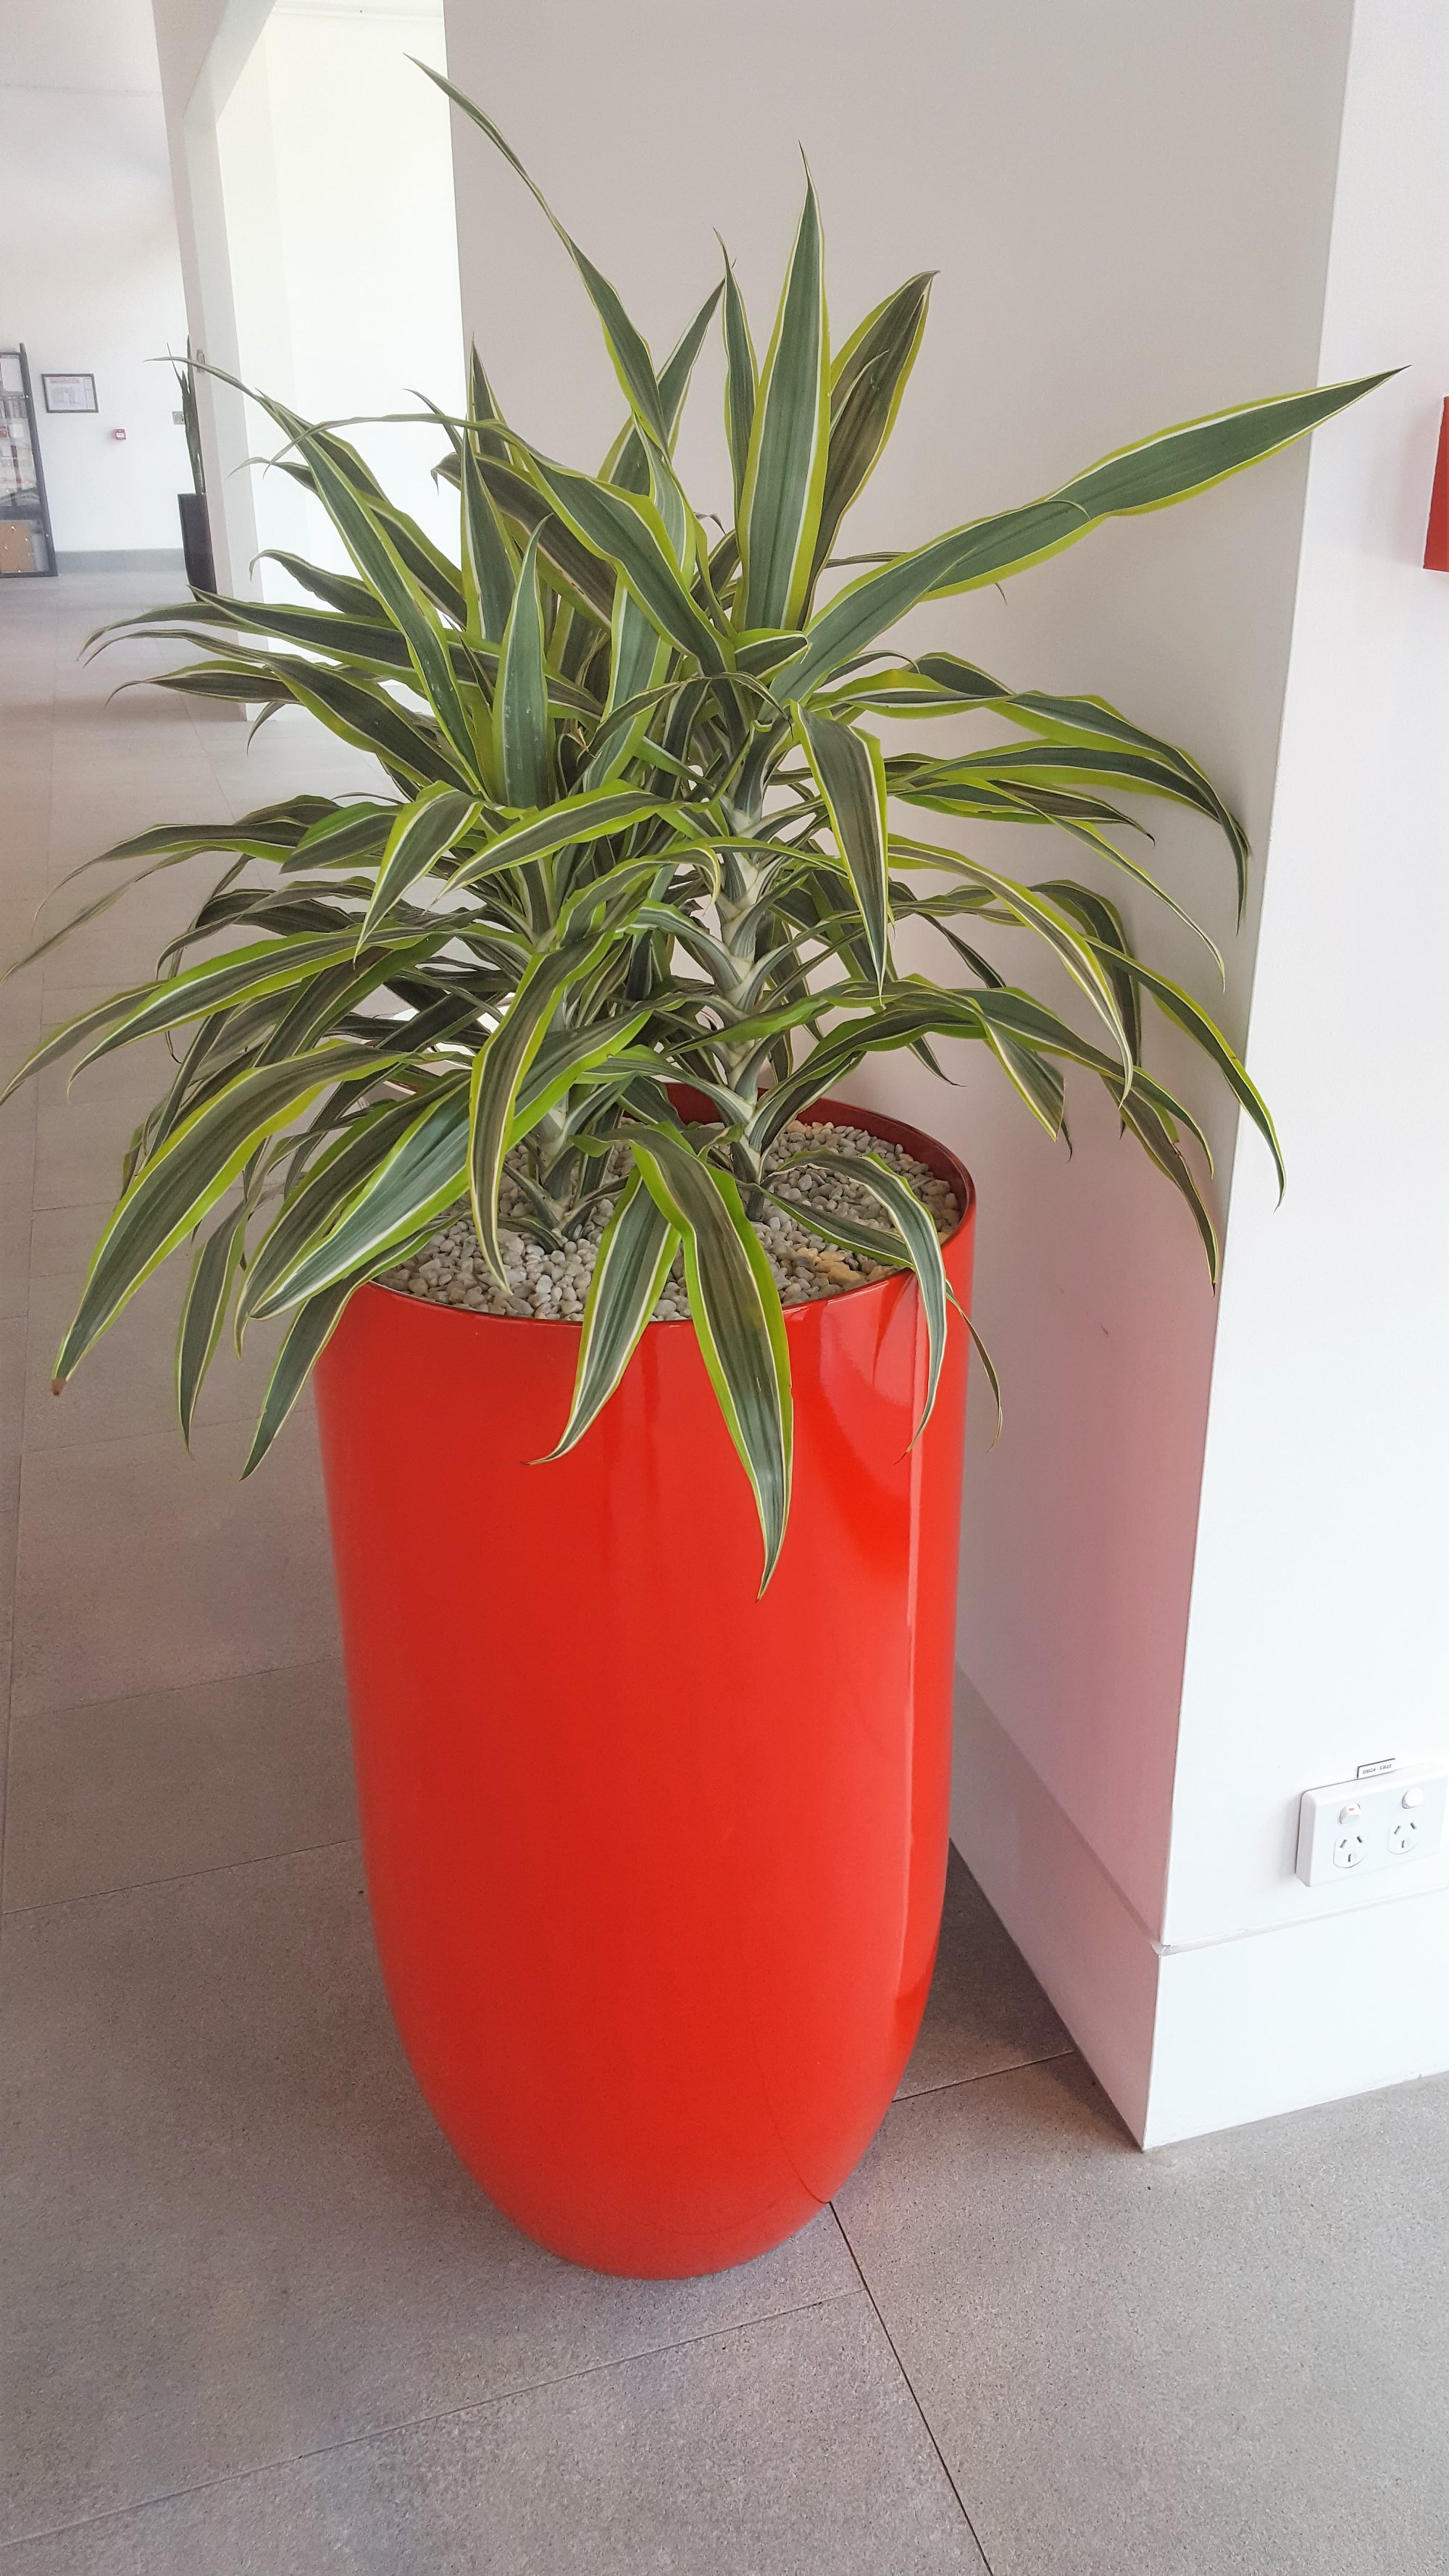 Deremensis, Indoor Plant Hire, Office Plant Hire, Office Plants, Green Design Indoor Plant Hire